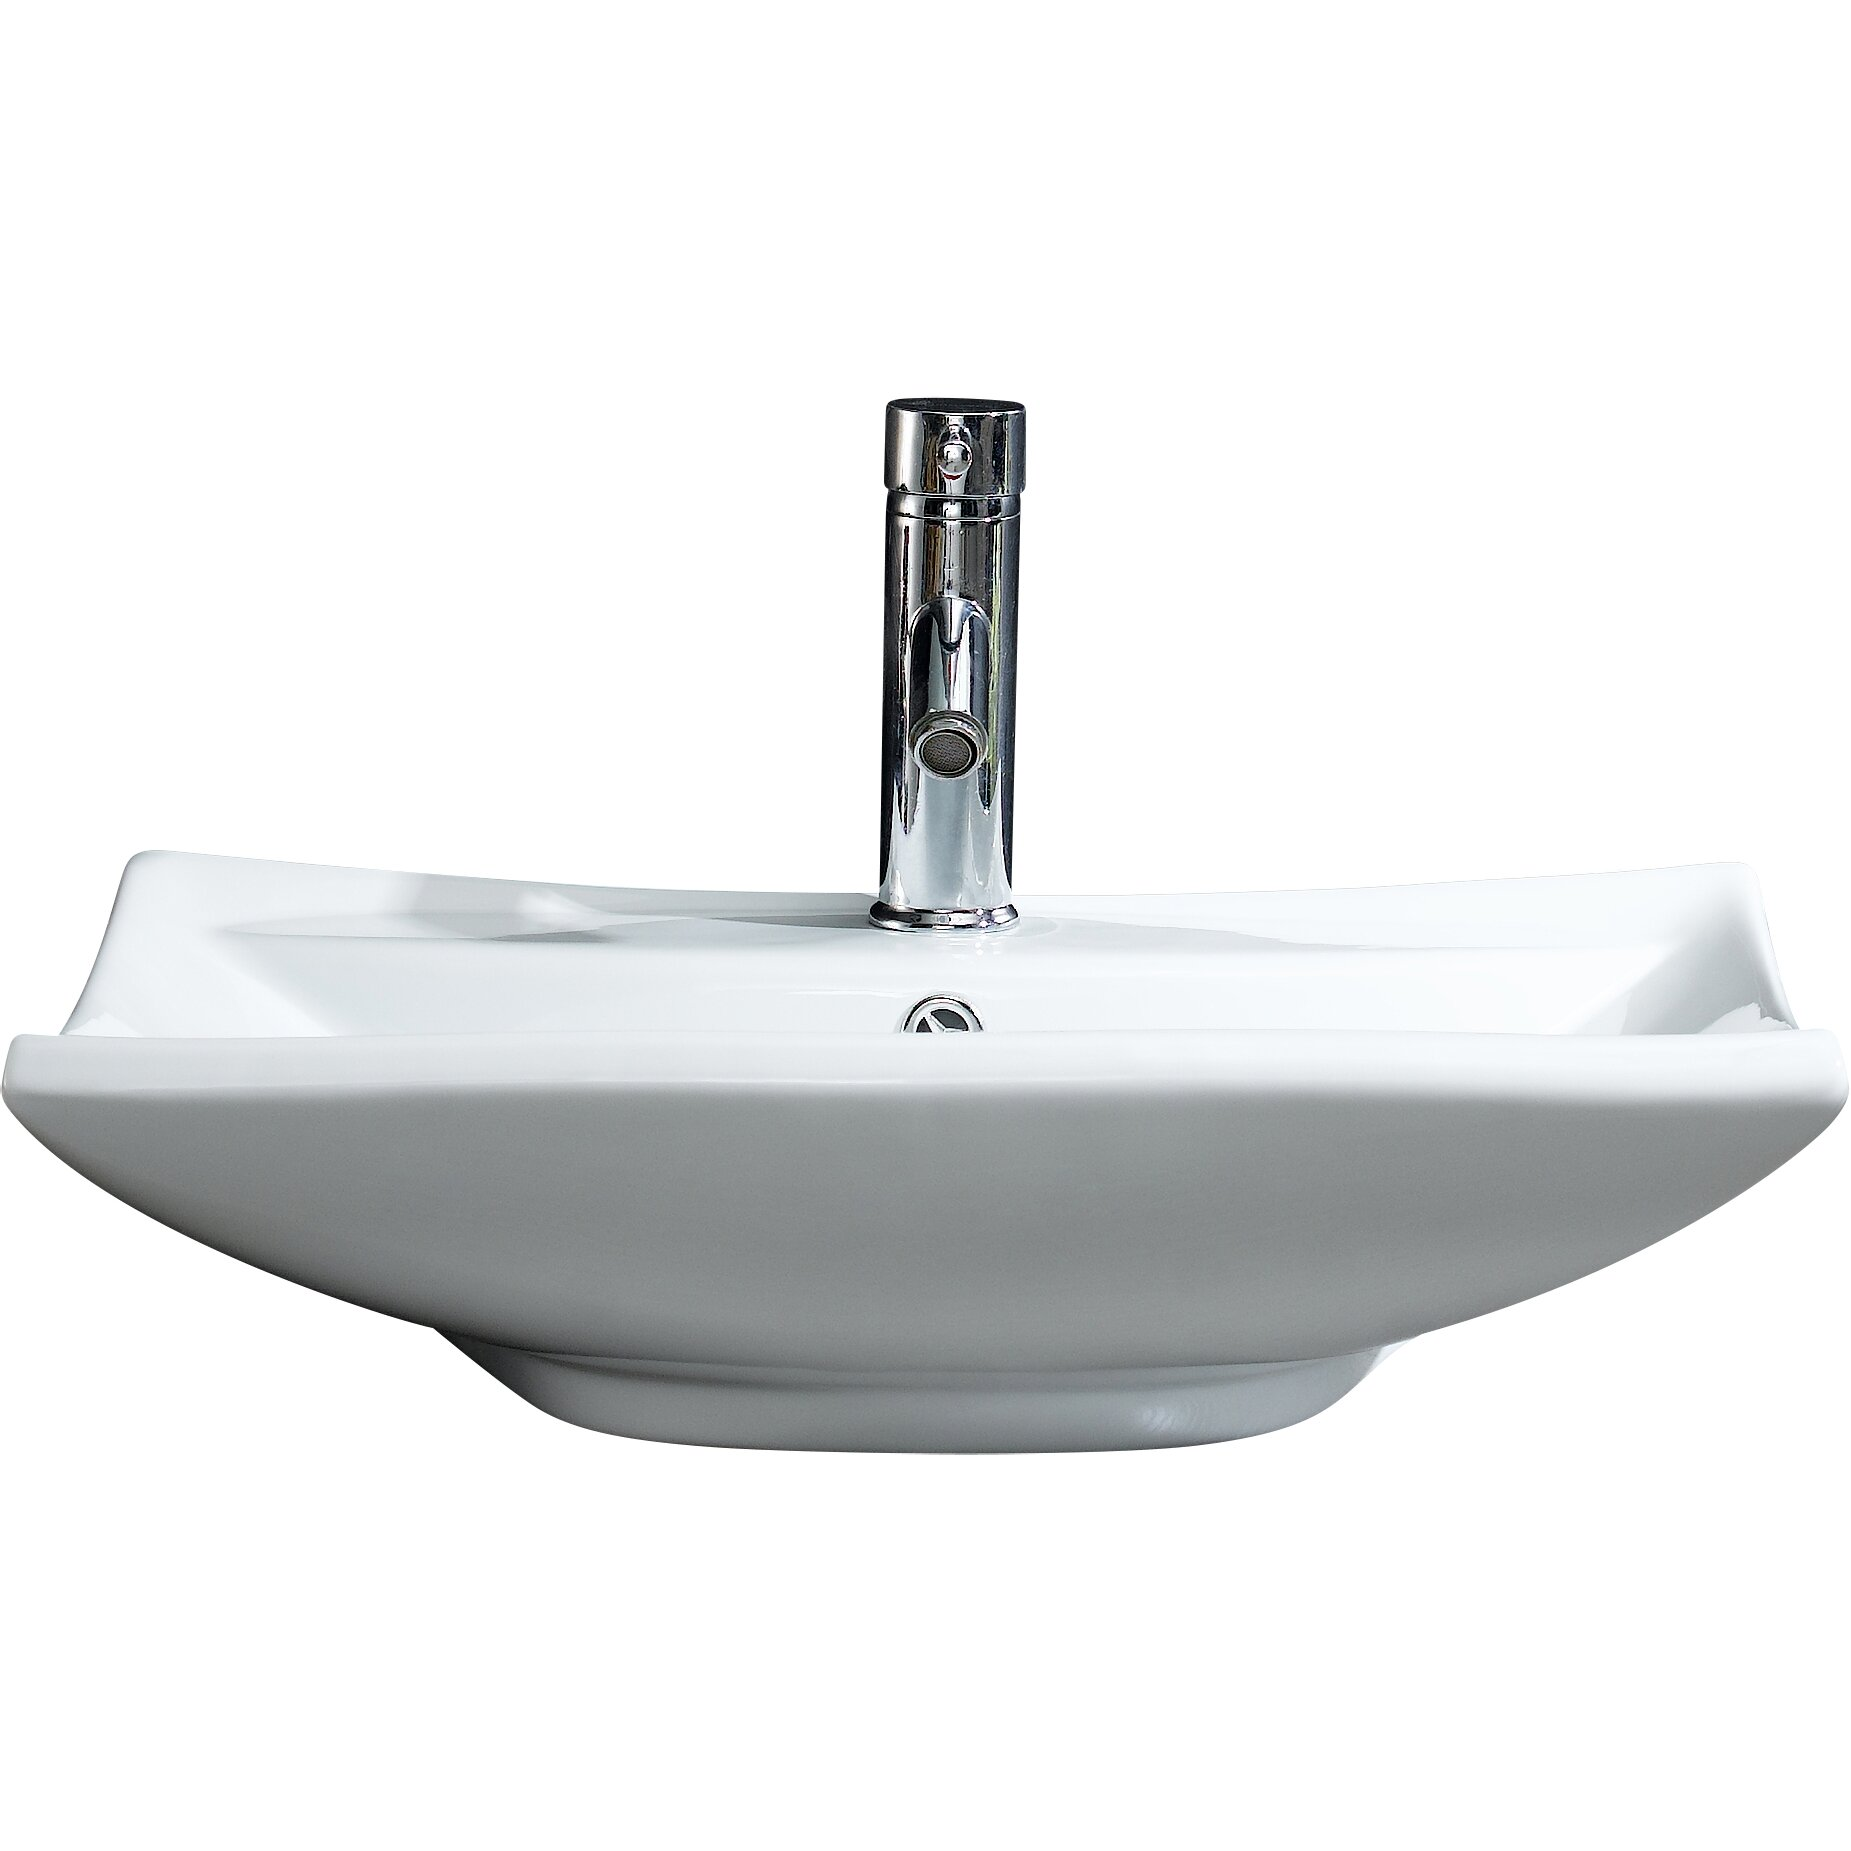 Square Sinks Bathroom Fine Fixtures Modern Vitreous Square Vessel Bathroom Sink With